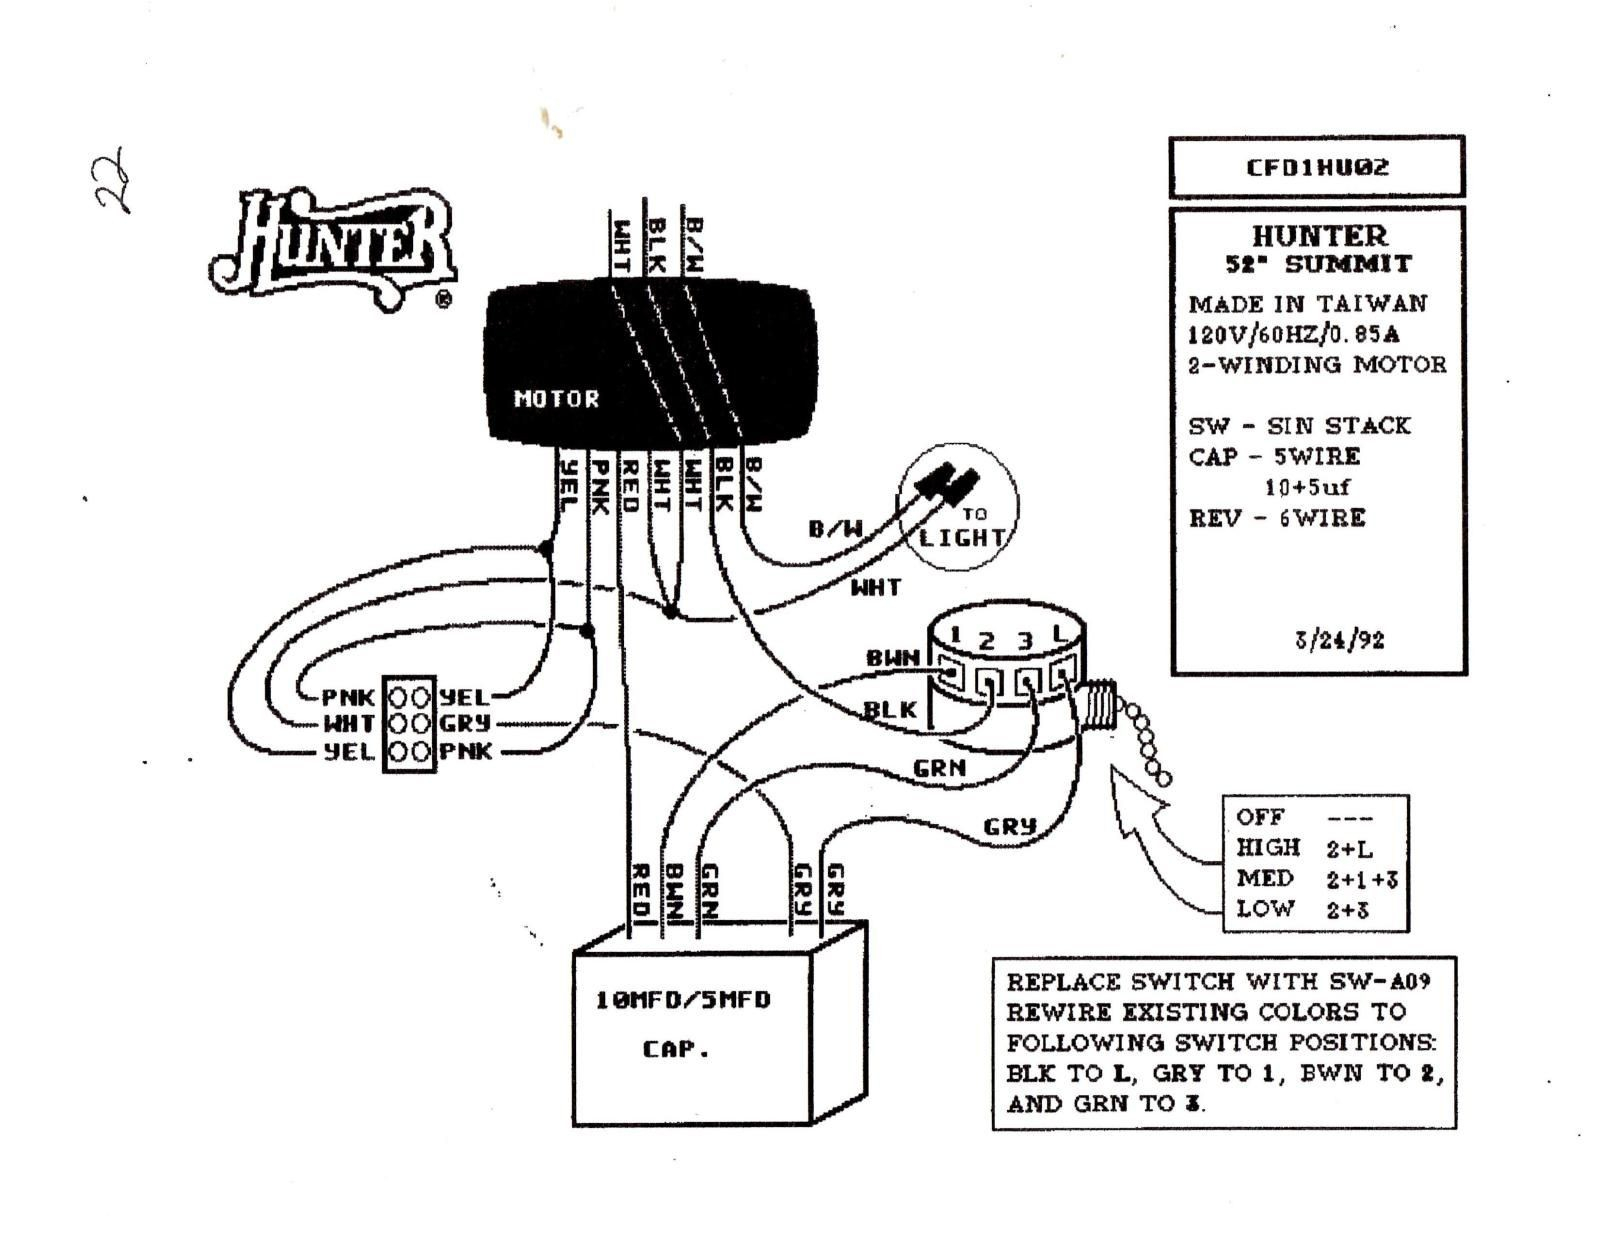 hunter ceiling fan 3 way switch wiring diagram Collection-Wiring Diagram for Ceiling Fan Switch New Hunter Ceiling Fan Speed Switch Wiring Diagram 8-c